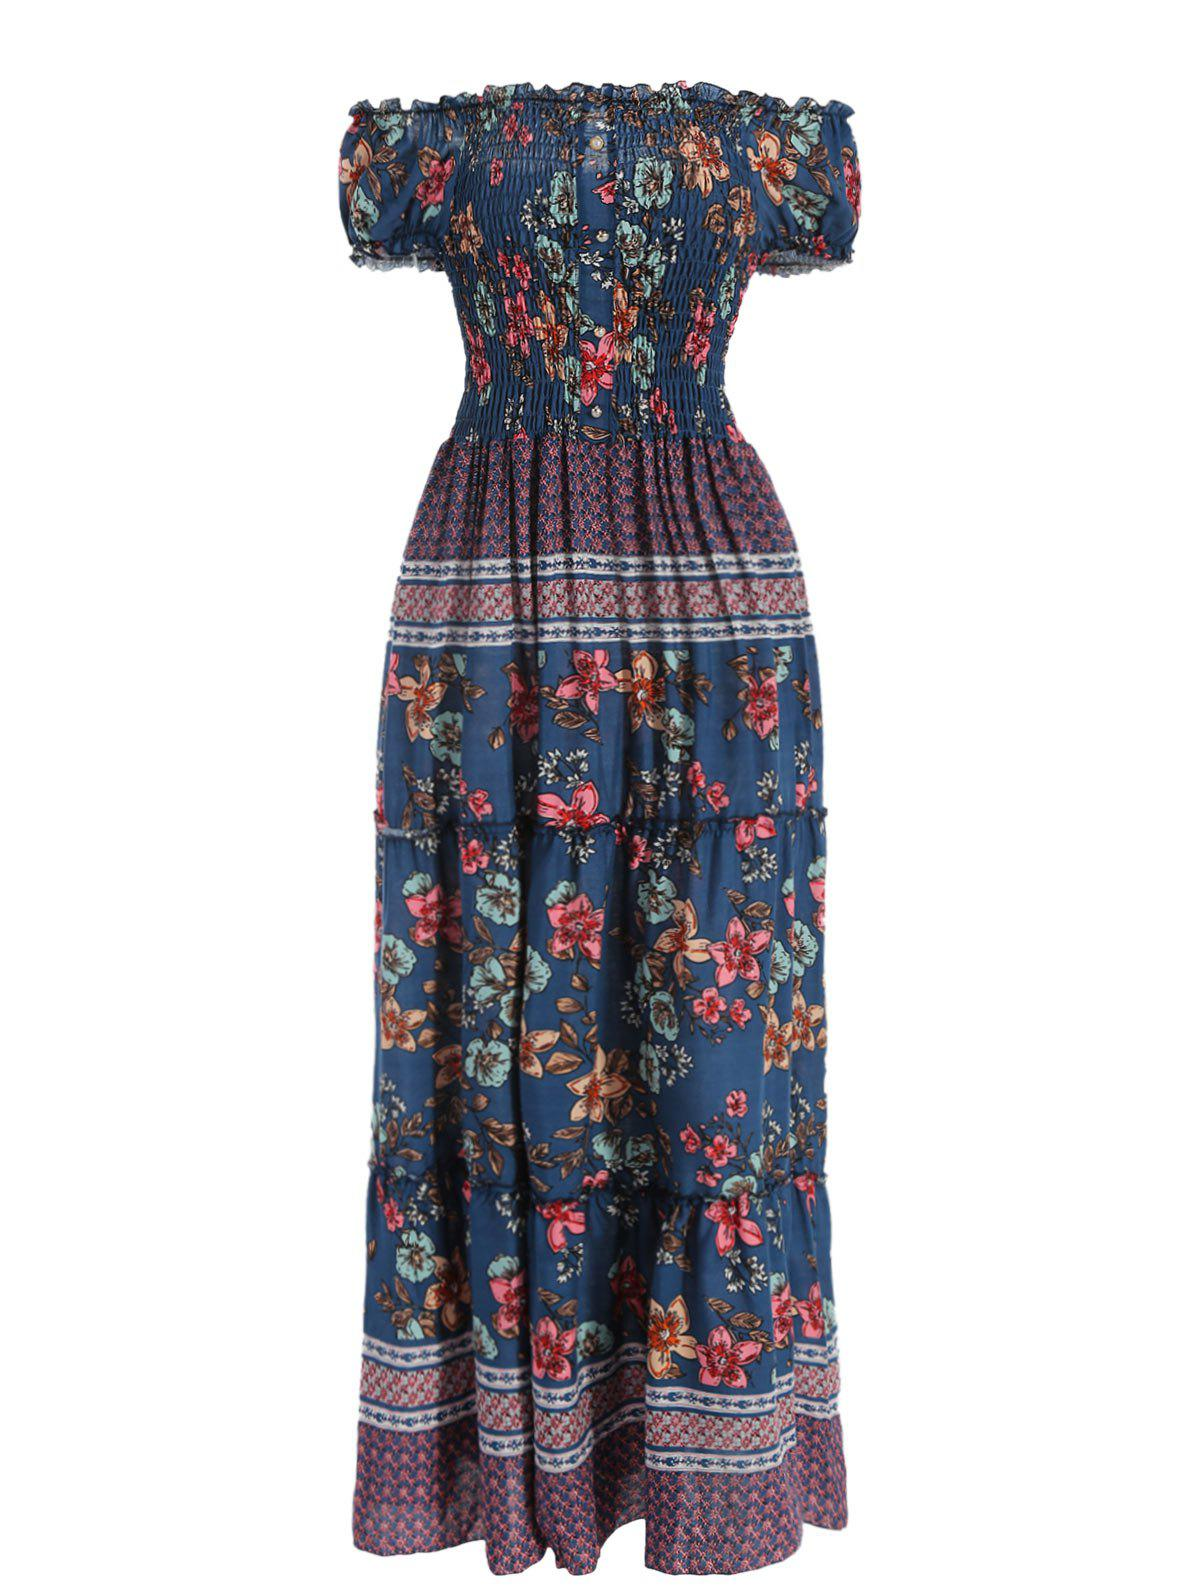 Unique Off The Shoulder Floral Print Maxi Dress